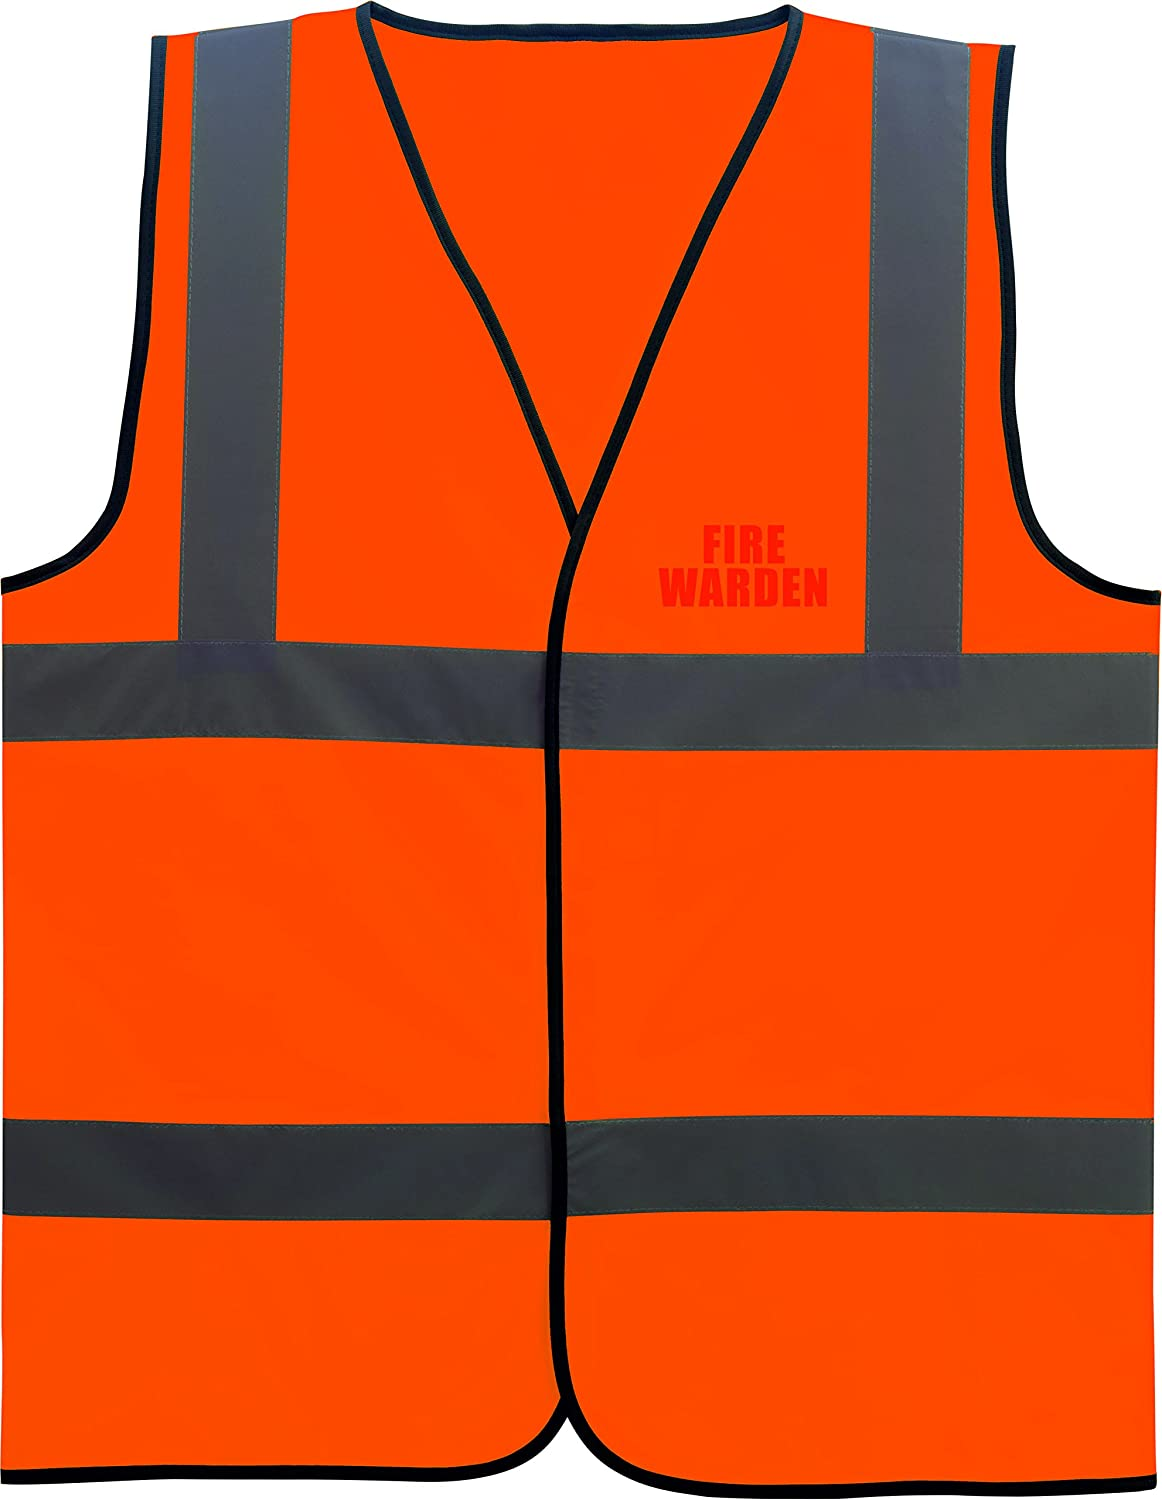 Fire Warden Hi Vis Viz High Visibility Vest Safety Waistcoat With Velcro Fastening